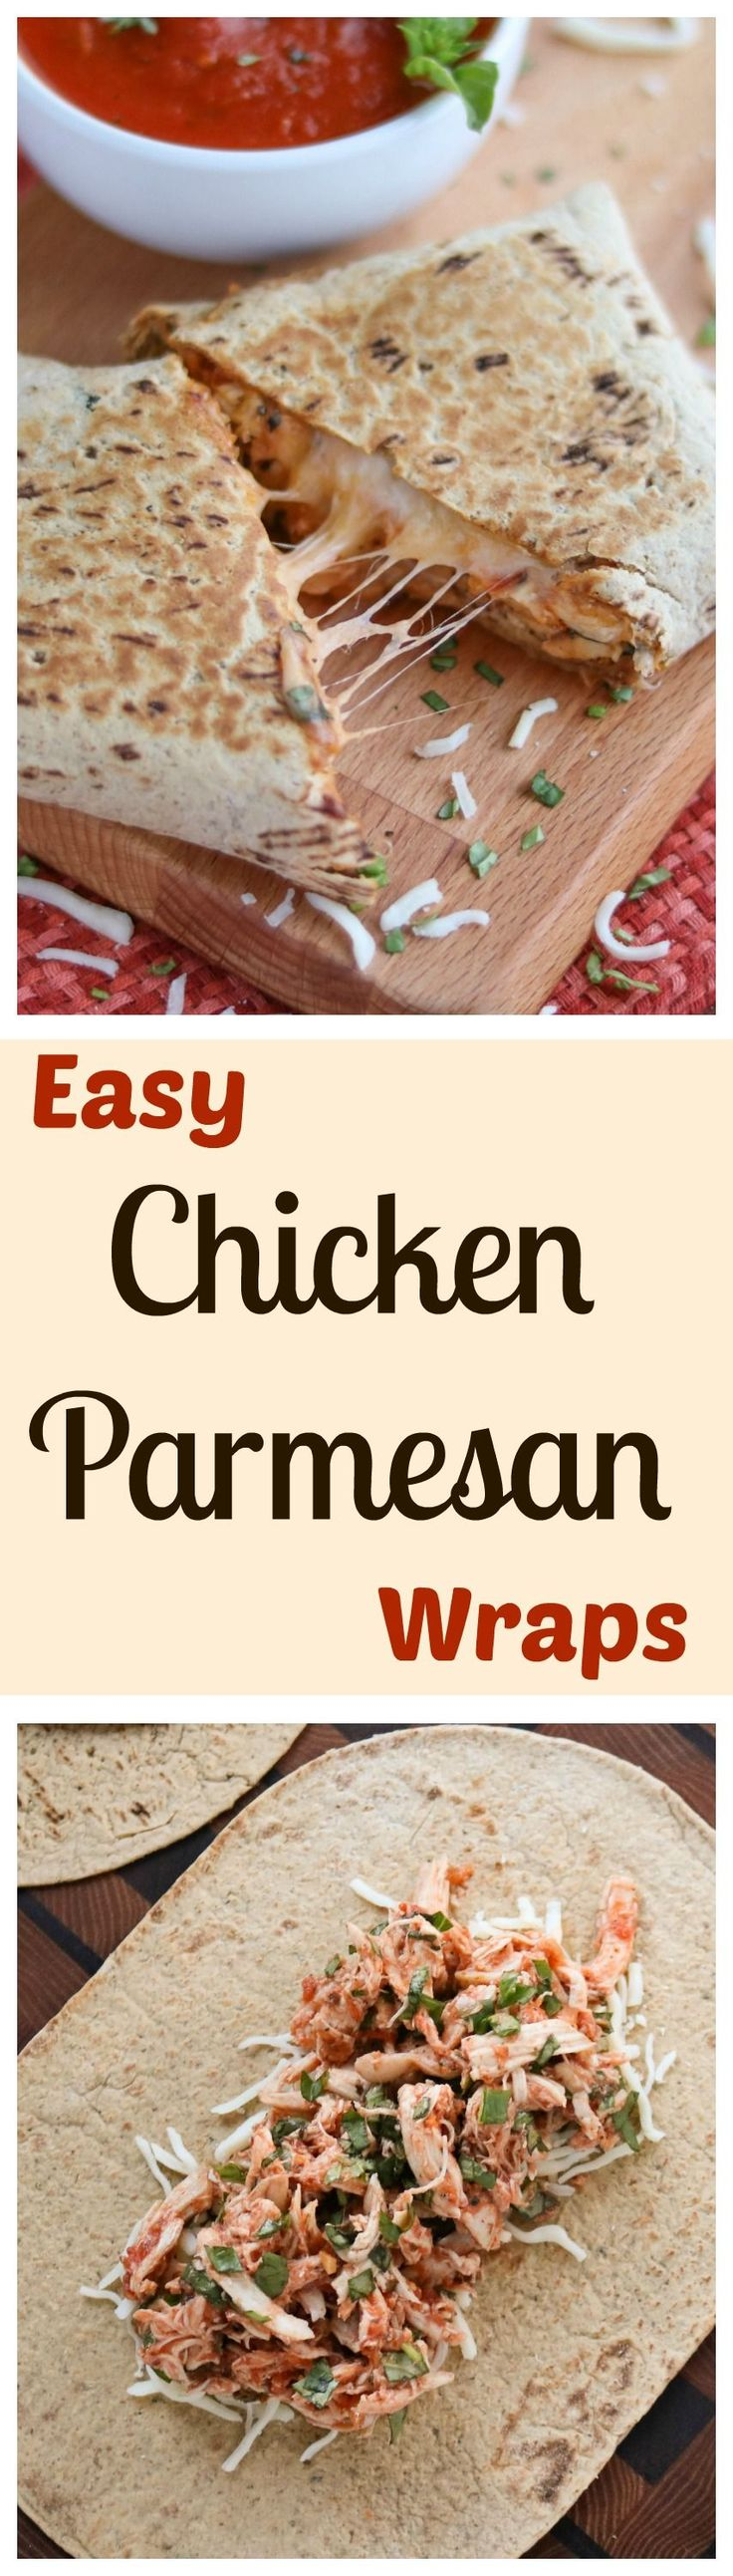 meal  trainers   flavors parmesan Easy gel freezable  comforting the asics are a favorite    minute so    Wraps Parmesan super fast  www TwoHealthyKitchens com portable too  casserole Make of chicken These All simple      quick they     re cheesy  cumulus your AD   and ahead them Chicken saucy  yet and mens